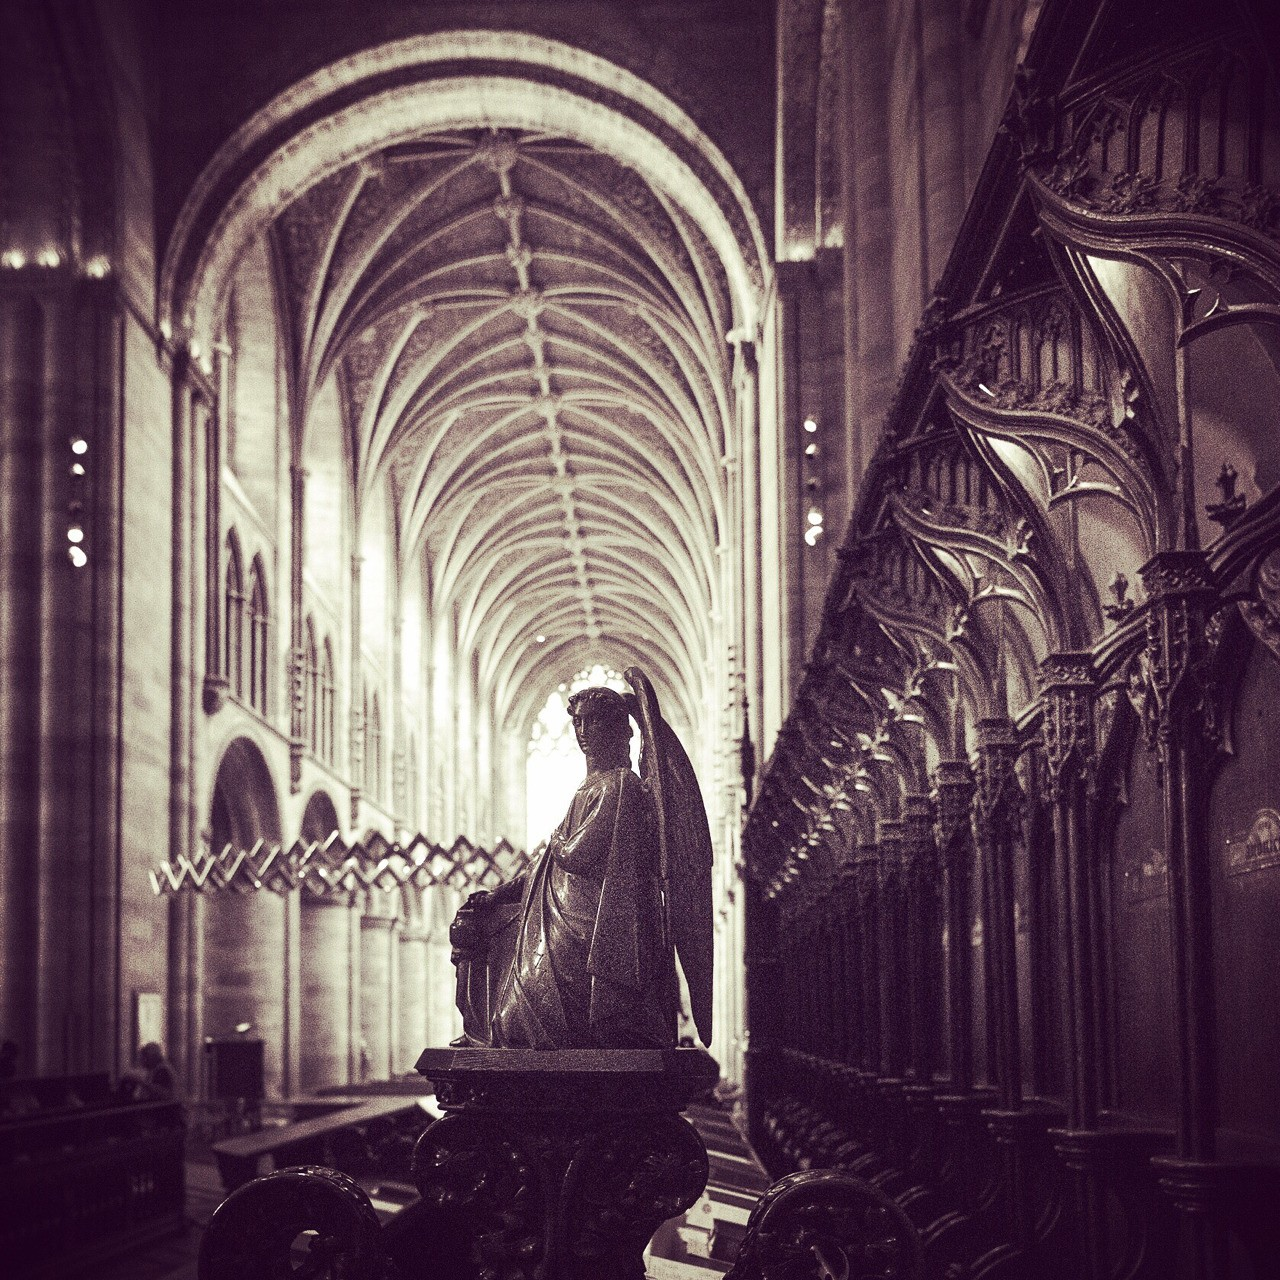 The Angel at Hereford Cathedral - follow me on Insta: @fotofacade